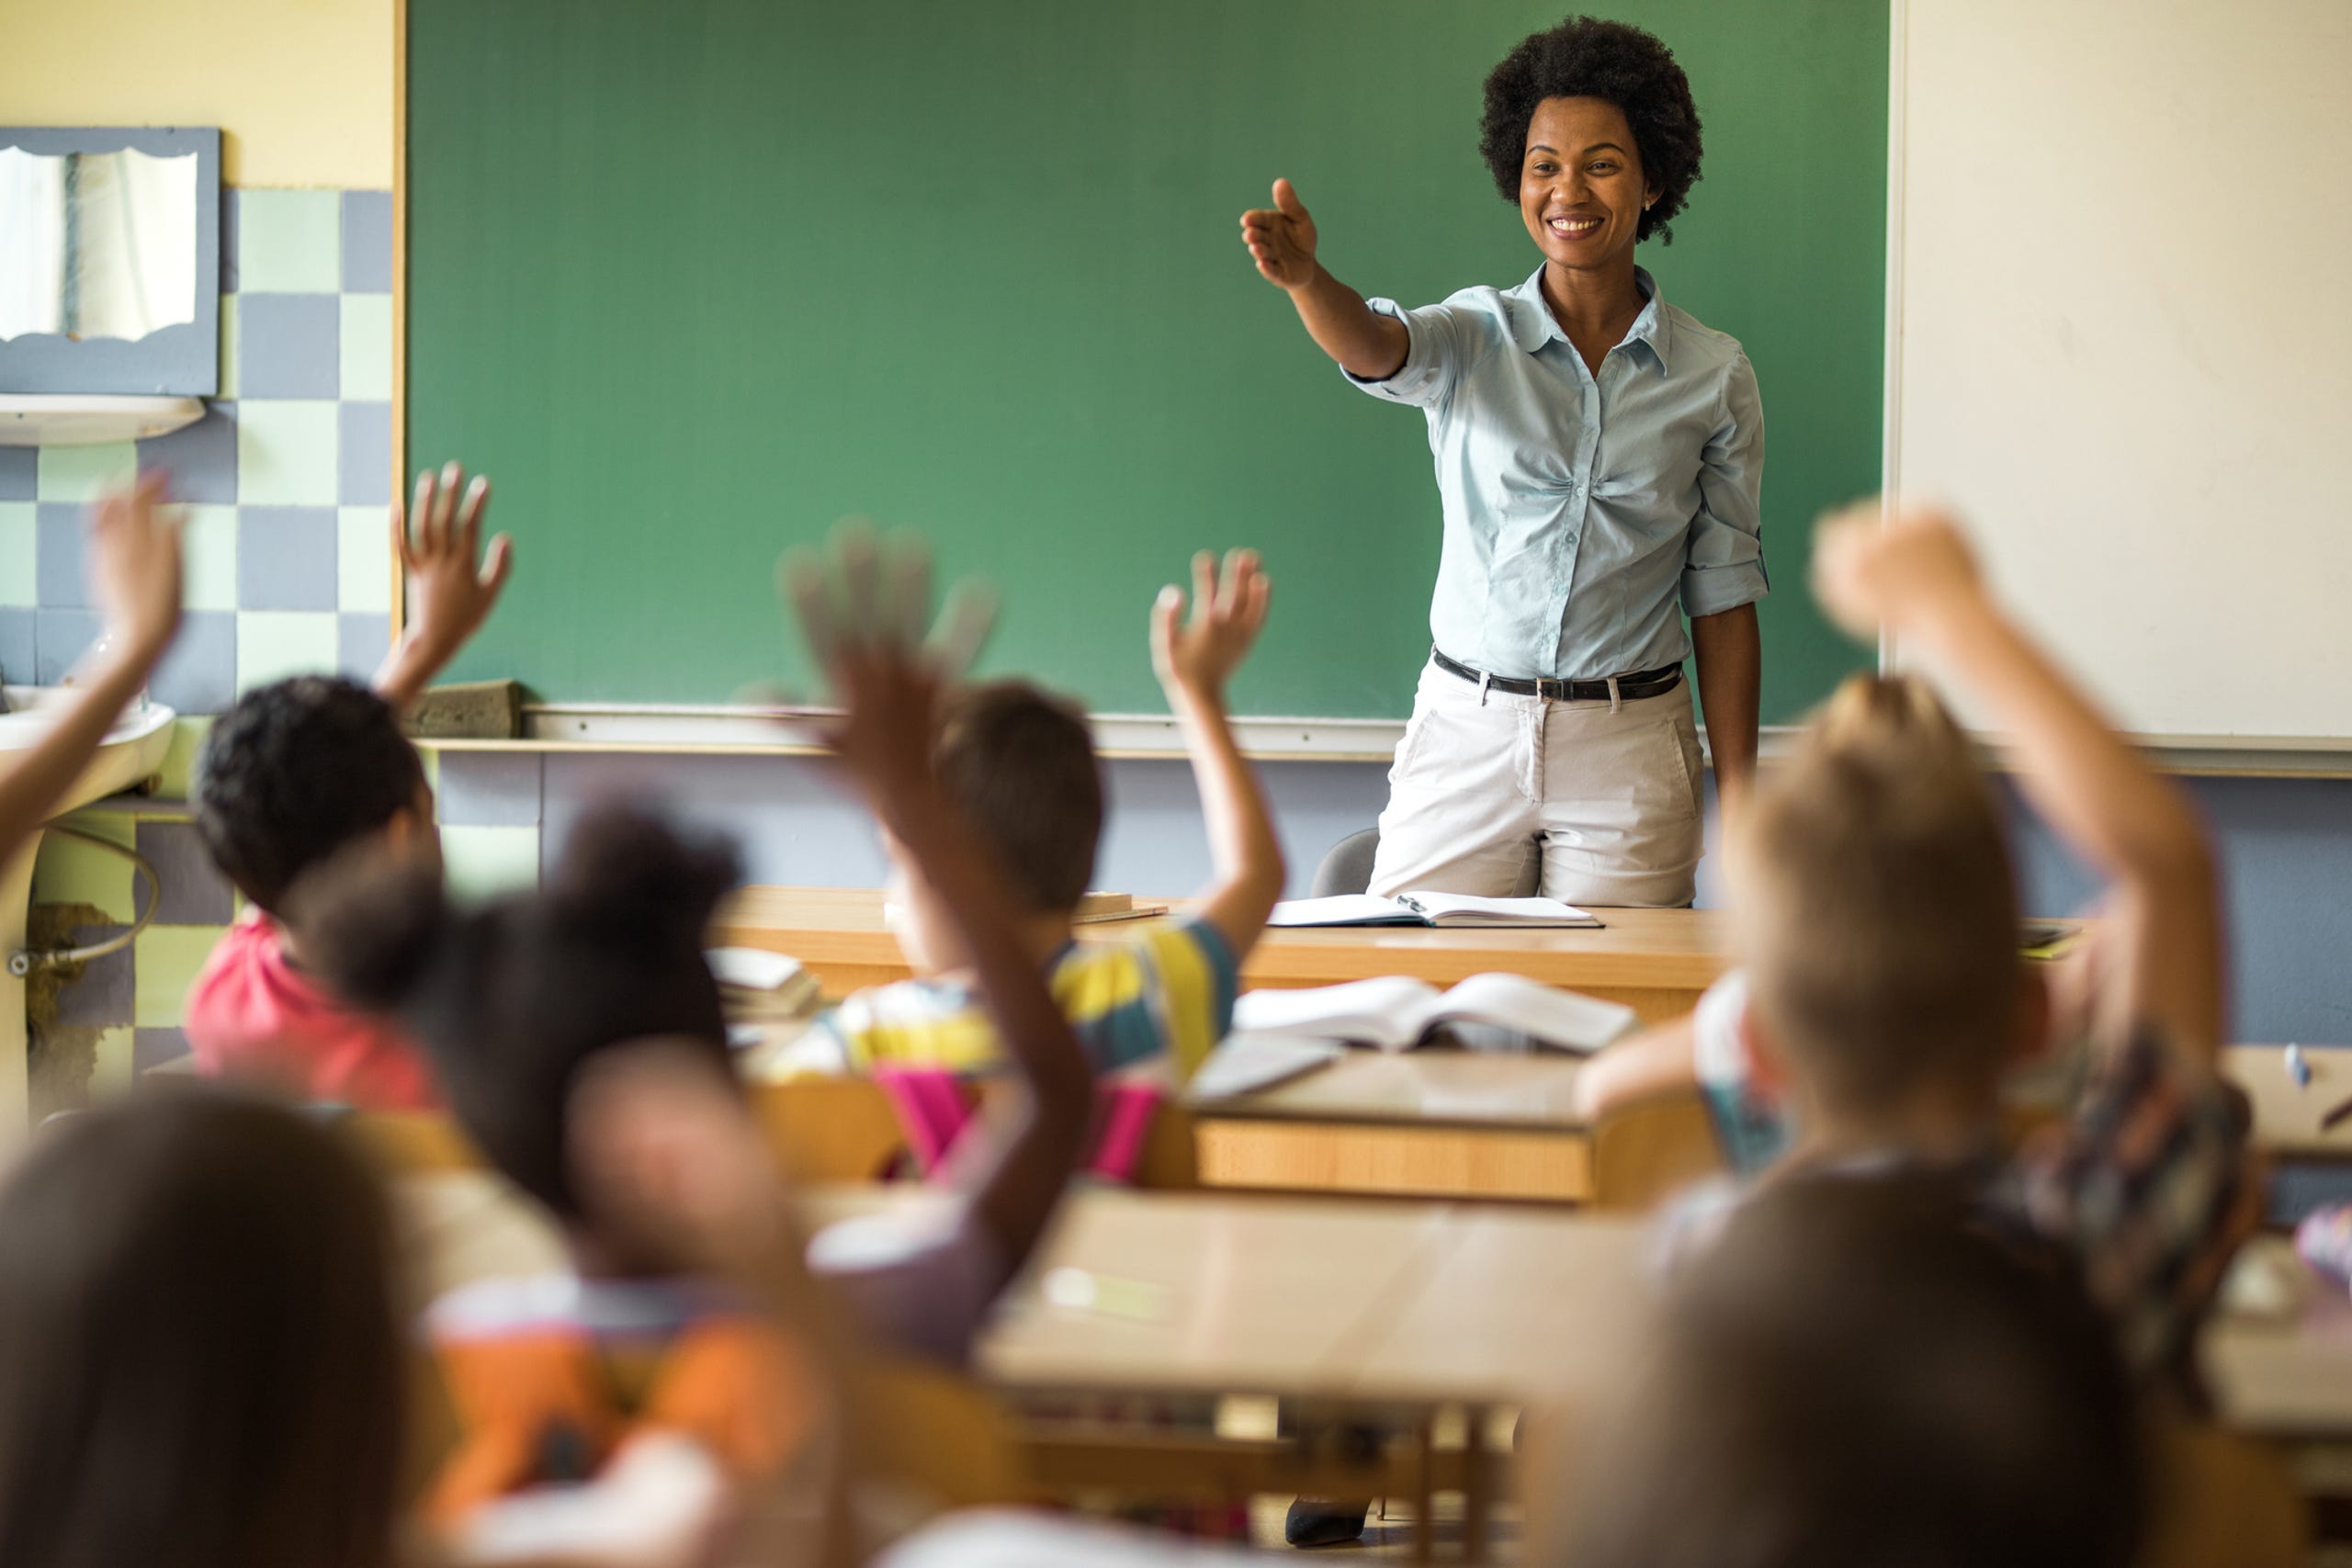 Best States For Teachers 2019 The states where it's best (and worst) to be a teacher